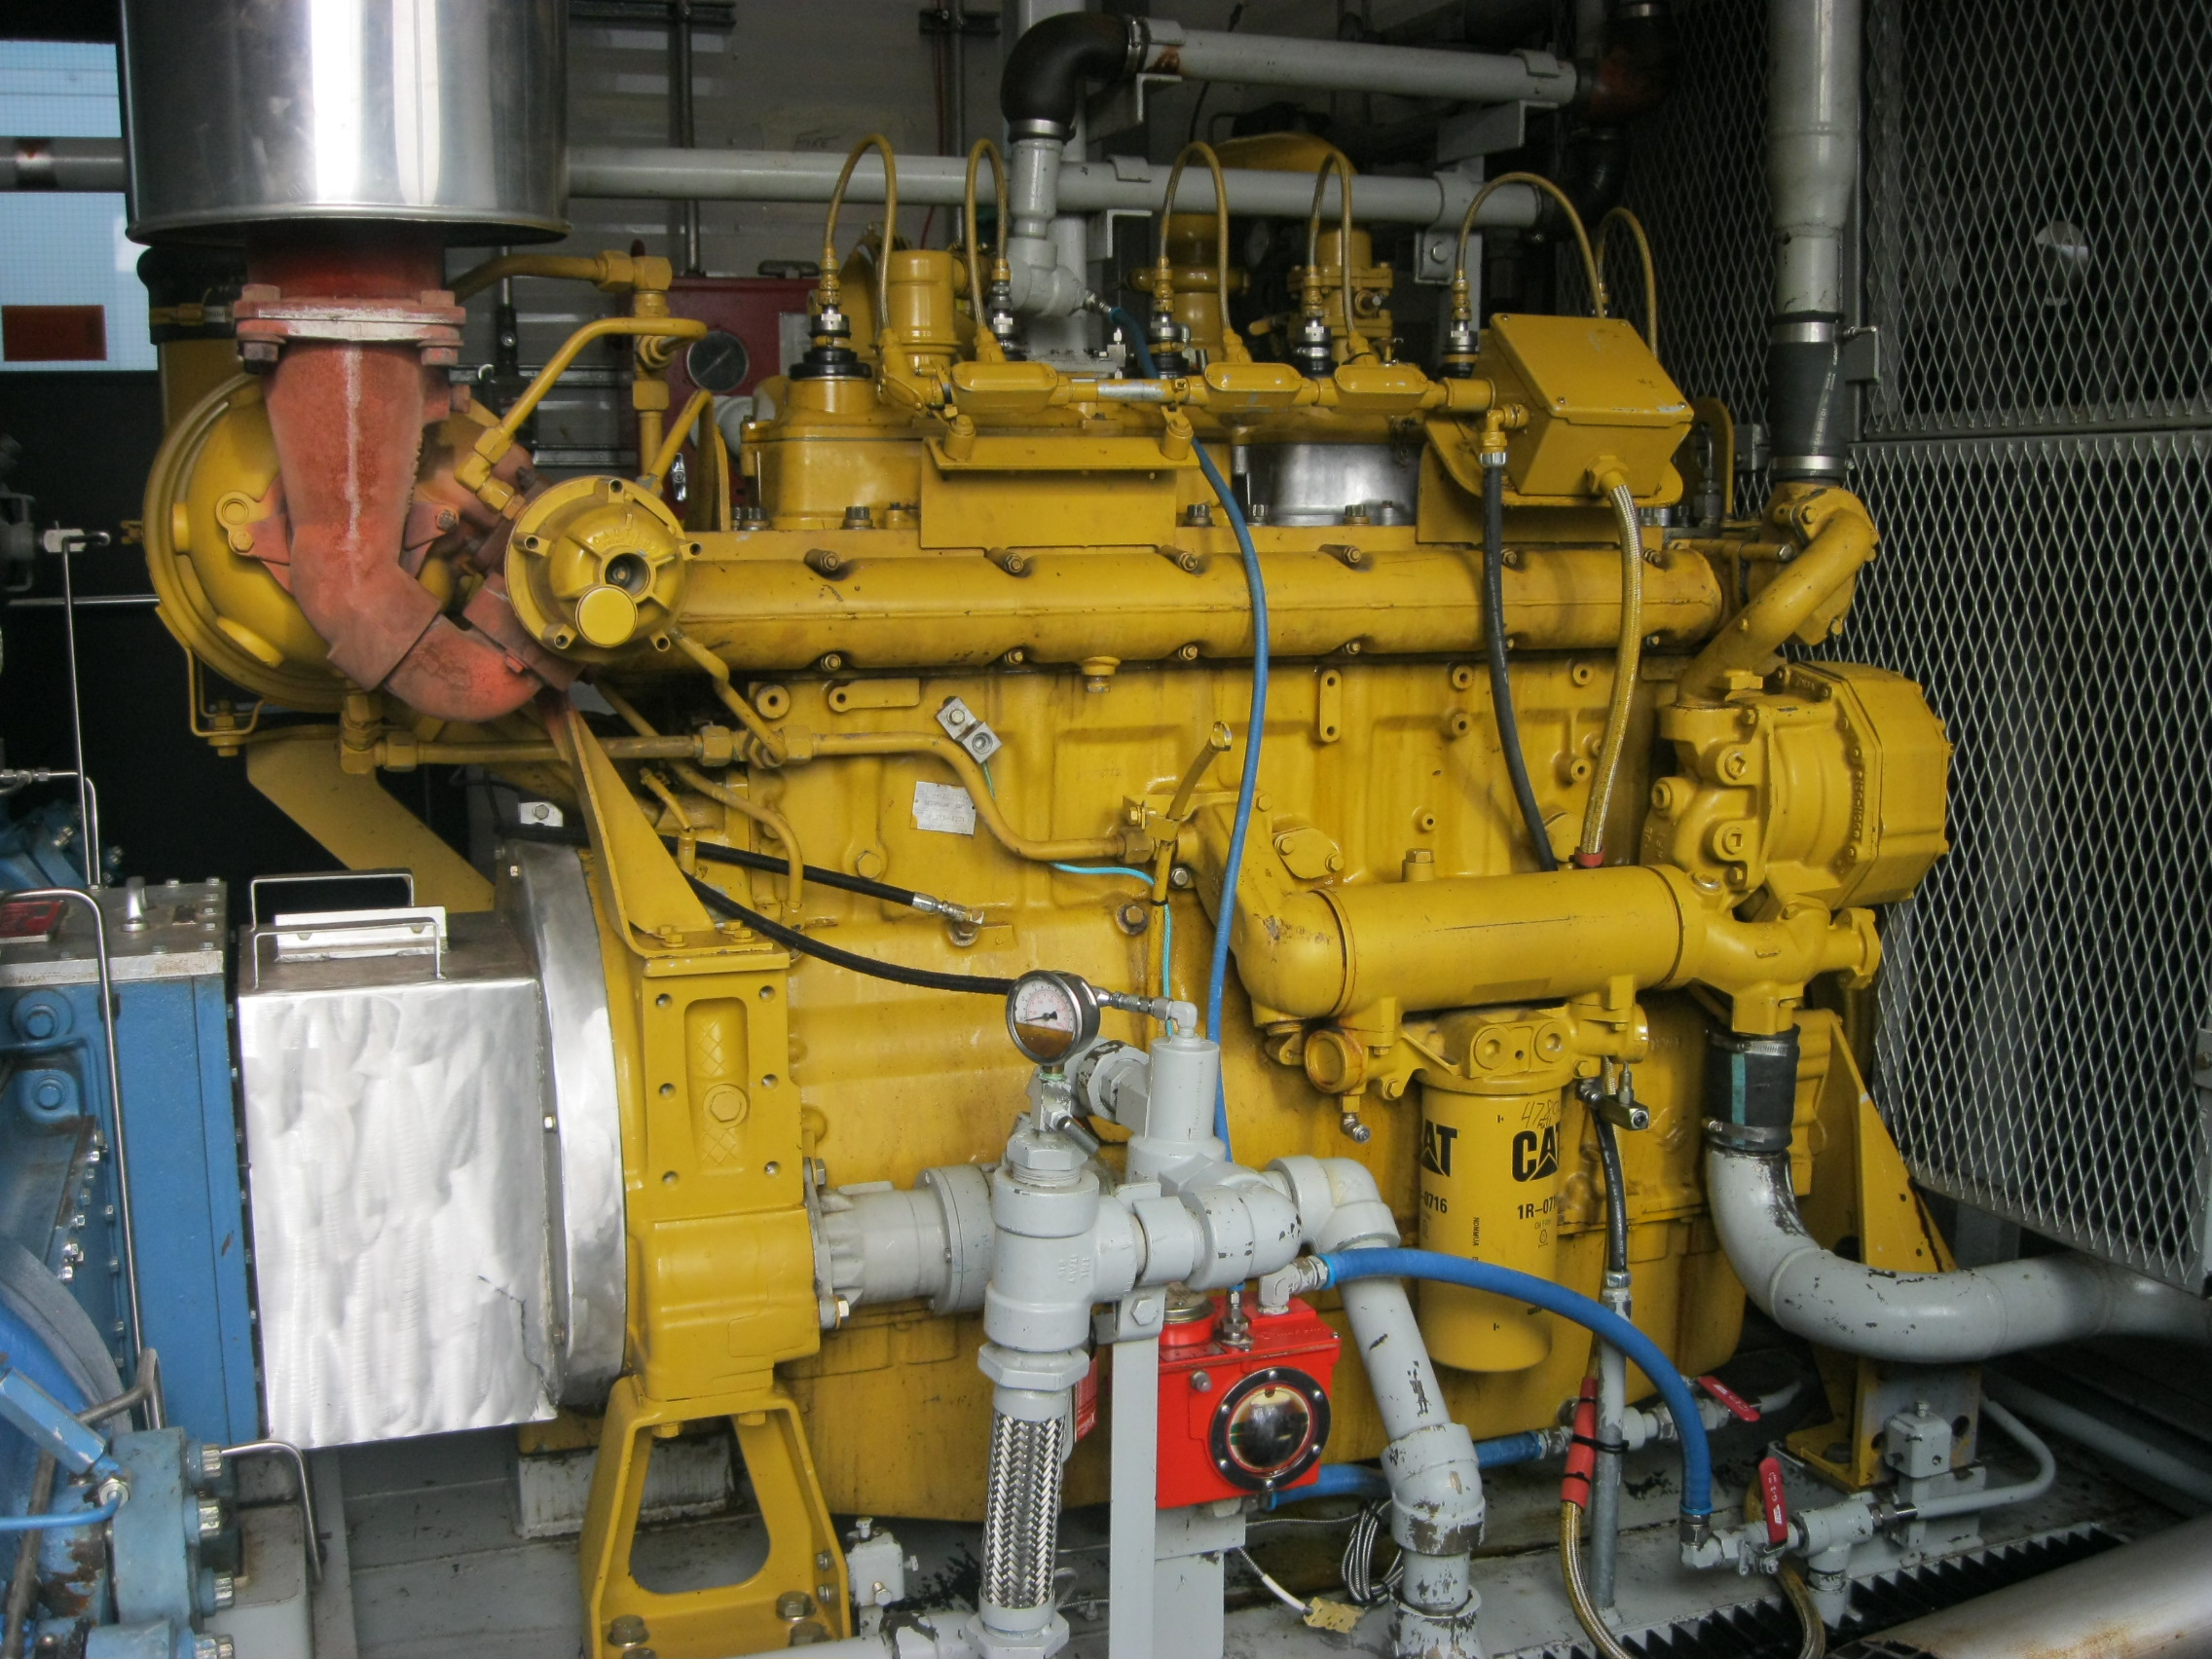 gas compressor Natural gas compressor station for sale barrgo is selling four cng flare gas compressors for a fraction of the price of new units these cng compressors were manufactured in 2010 and had an original price of $500k per unit.